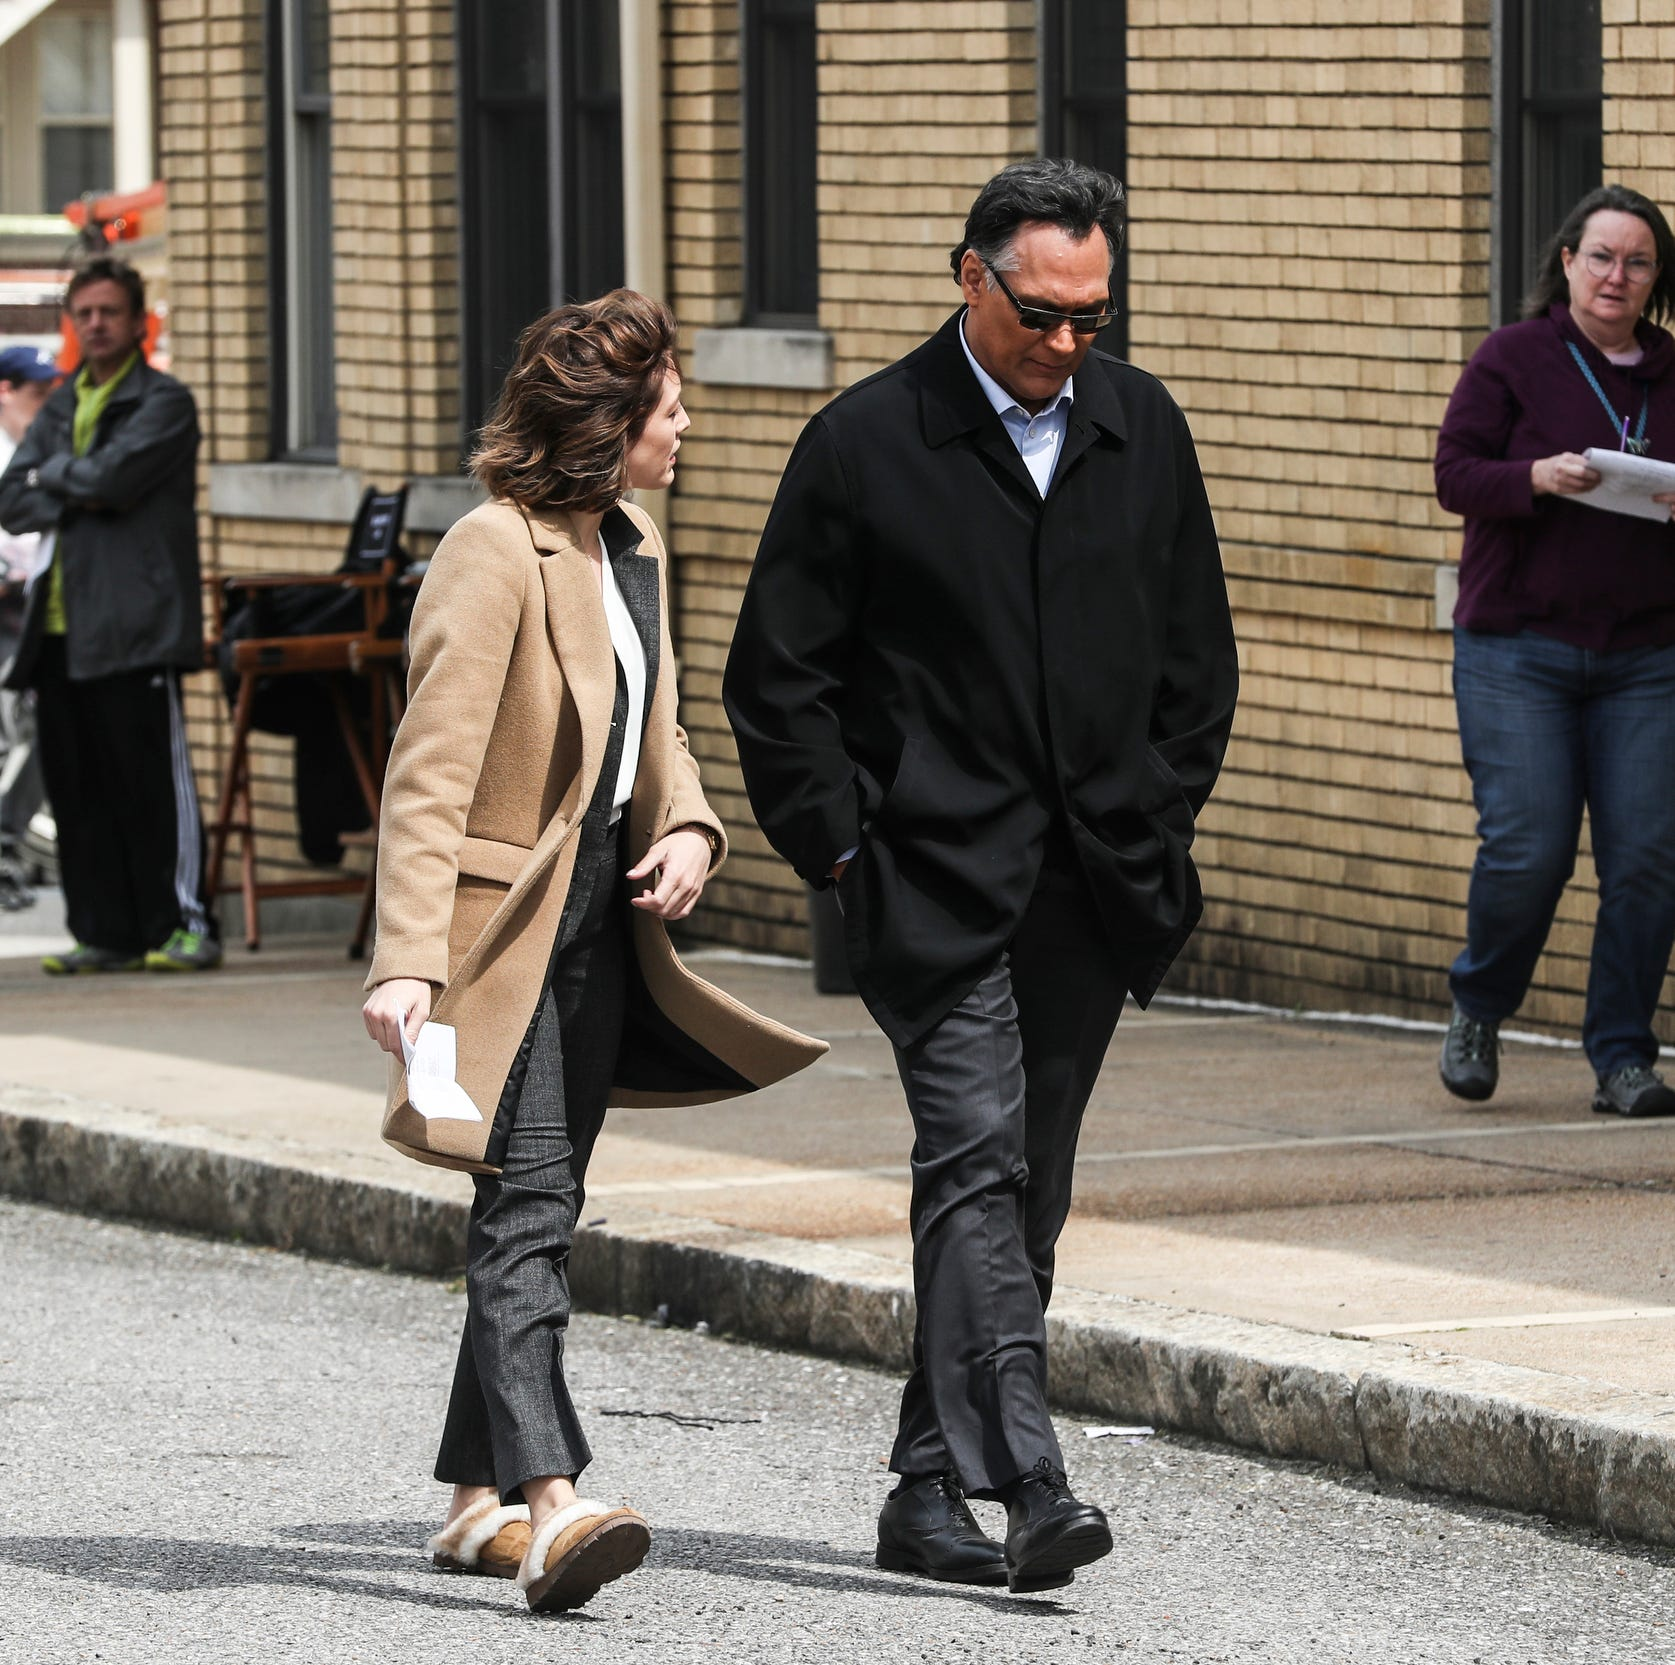 Smits, camera, action: NBC's 'Bluff City Law' shooting in Memphis